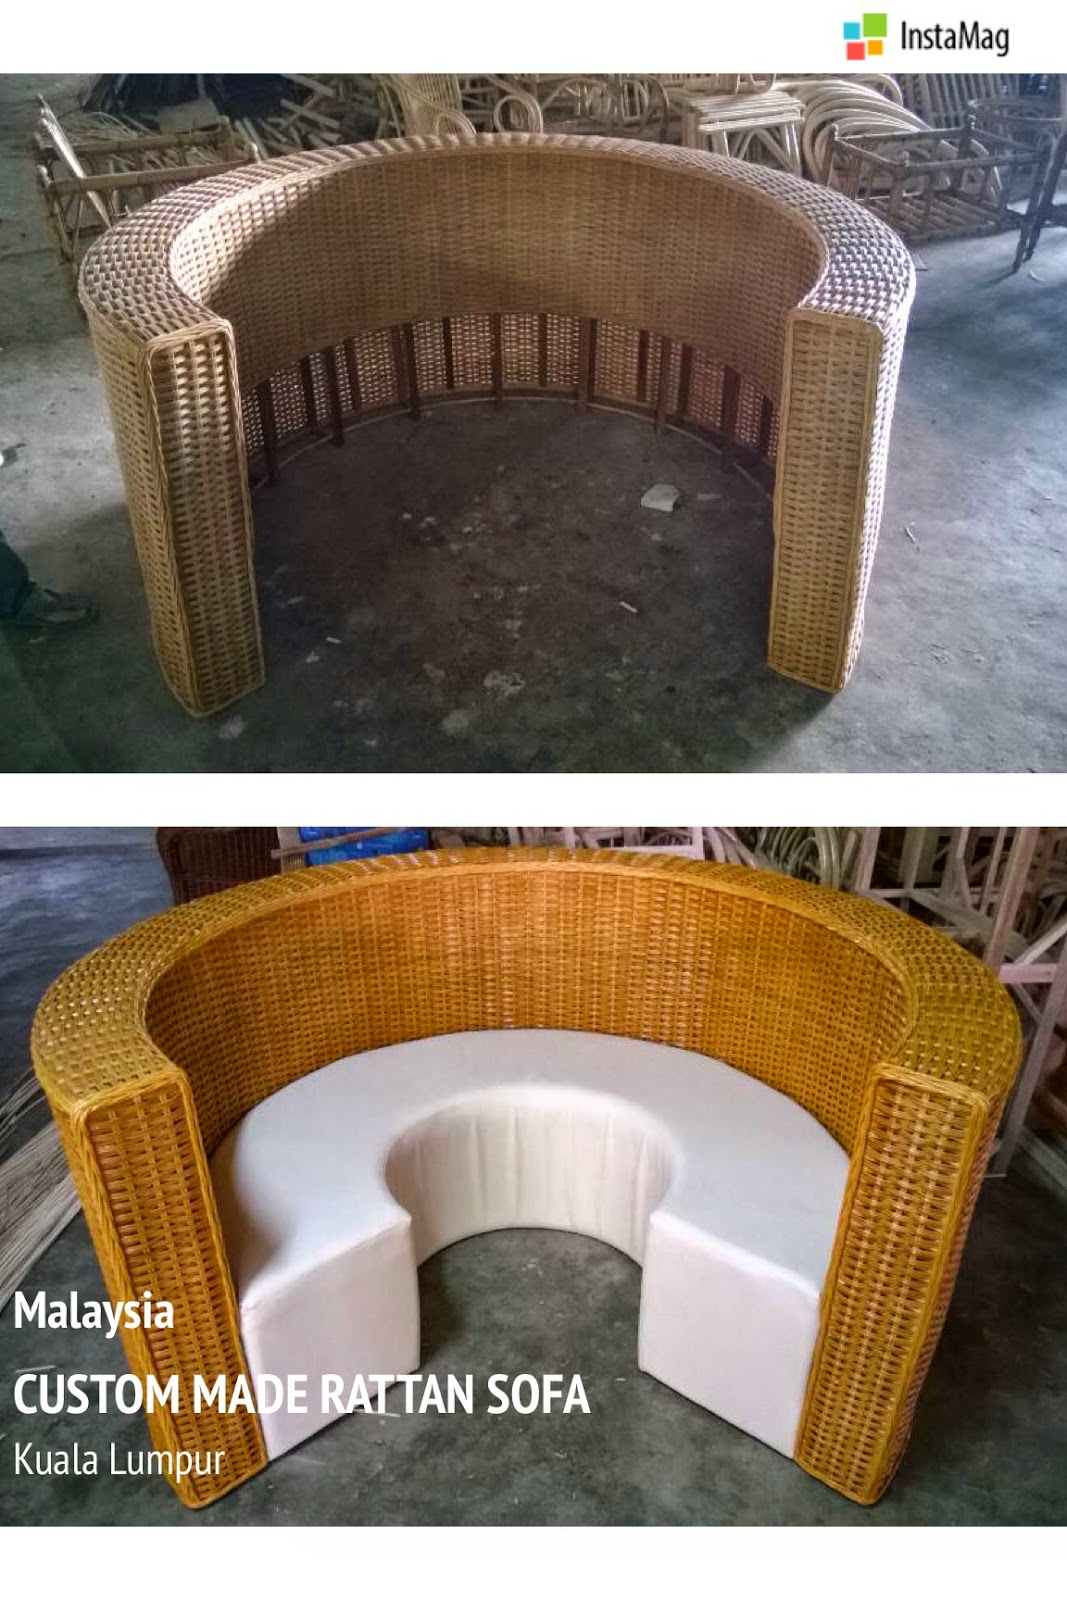 Repair Rattan Furniture  Rattan Sofa  Cane Wicker Chair  Wood chair in  Malaysia. Repair Rattan Furniture  Rattan Sofa  Cane Wicker Chair  Wood